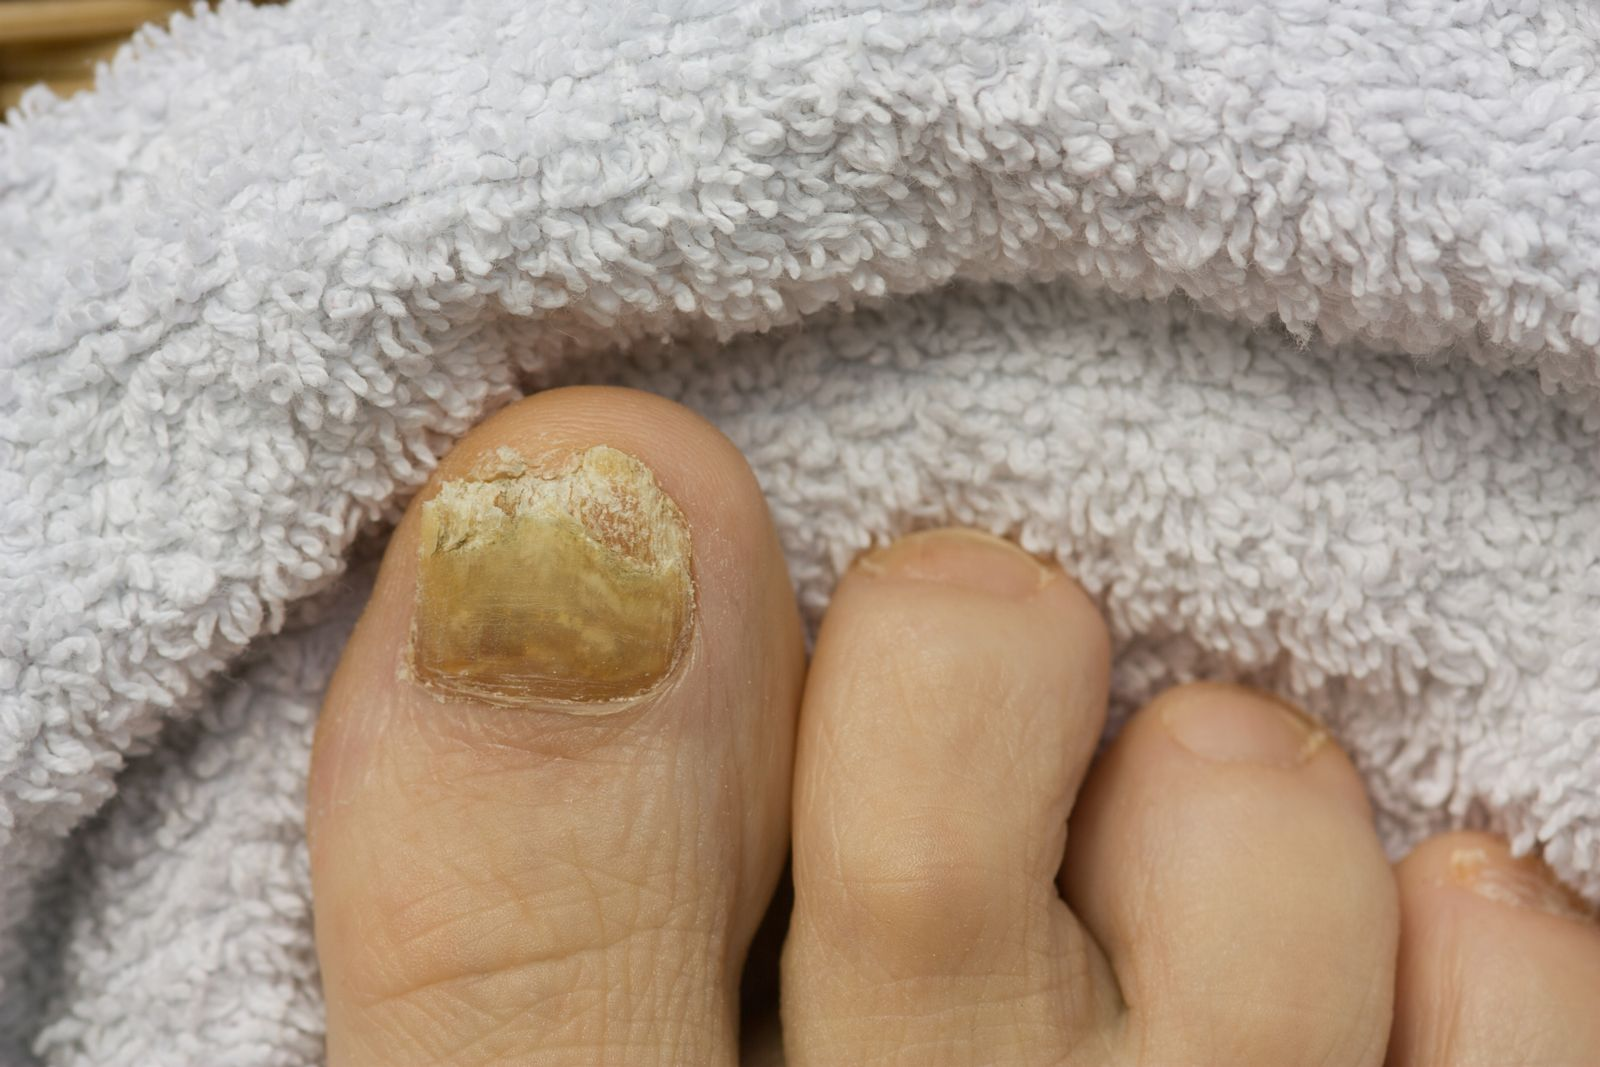 Too much polish can leave nails dry, cracked and vulnerable to fungus like this--not so pretty, right?